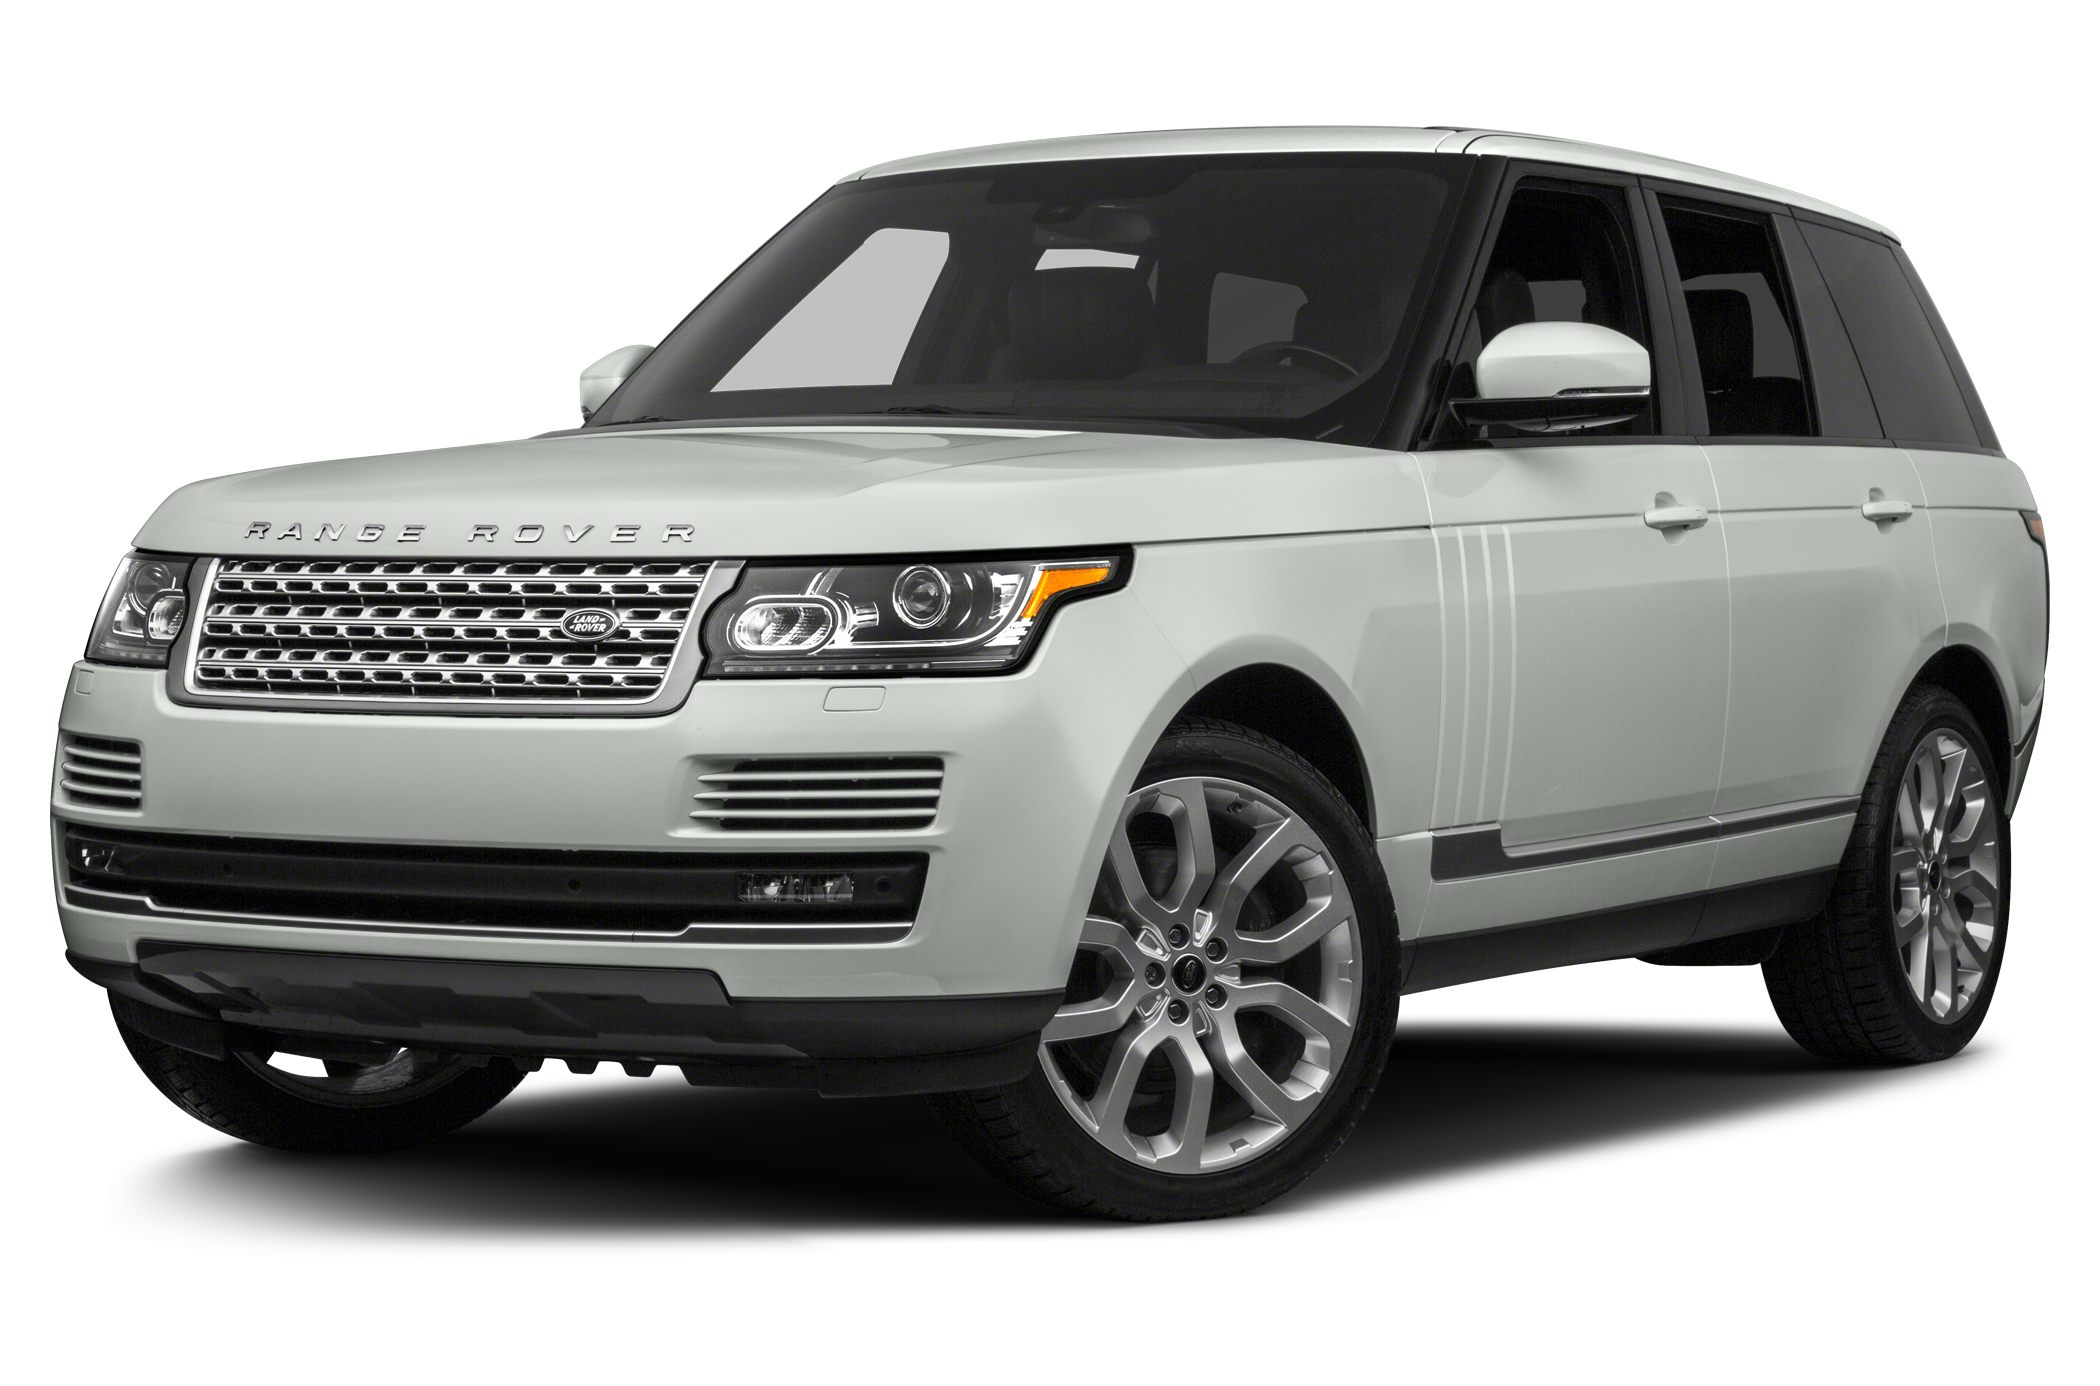 2016 Land Rover Range Rover 5.0L V8 Supercharged SV Autobiography 4dr 4x4  LWB Specs and Prices